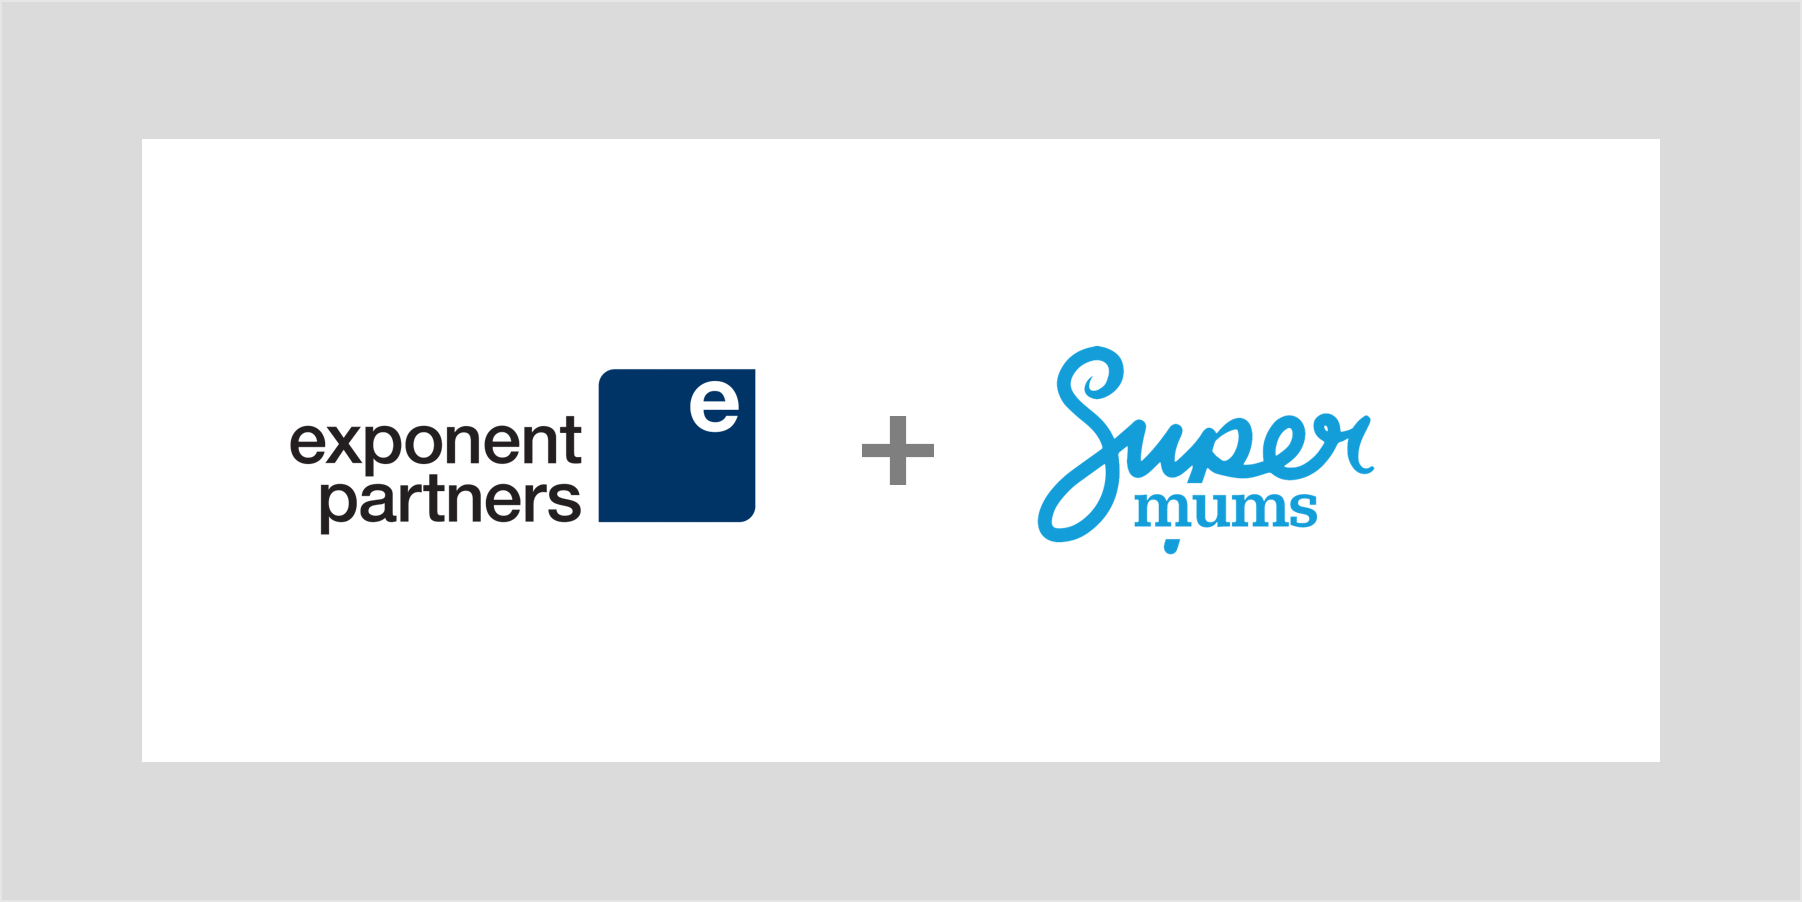 Graphic: Exponent Partners SuperMums logos